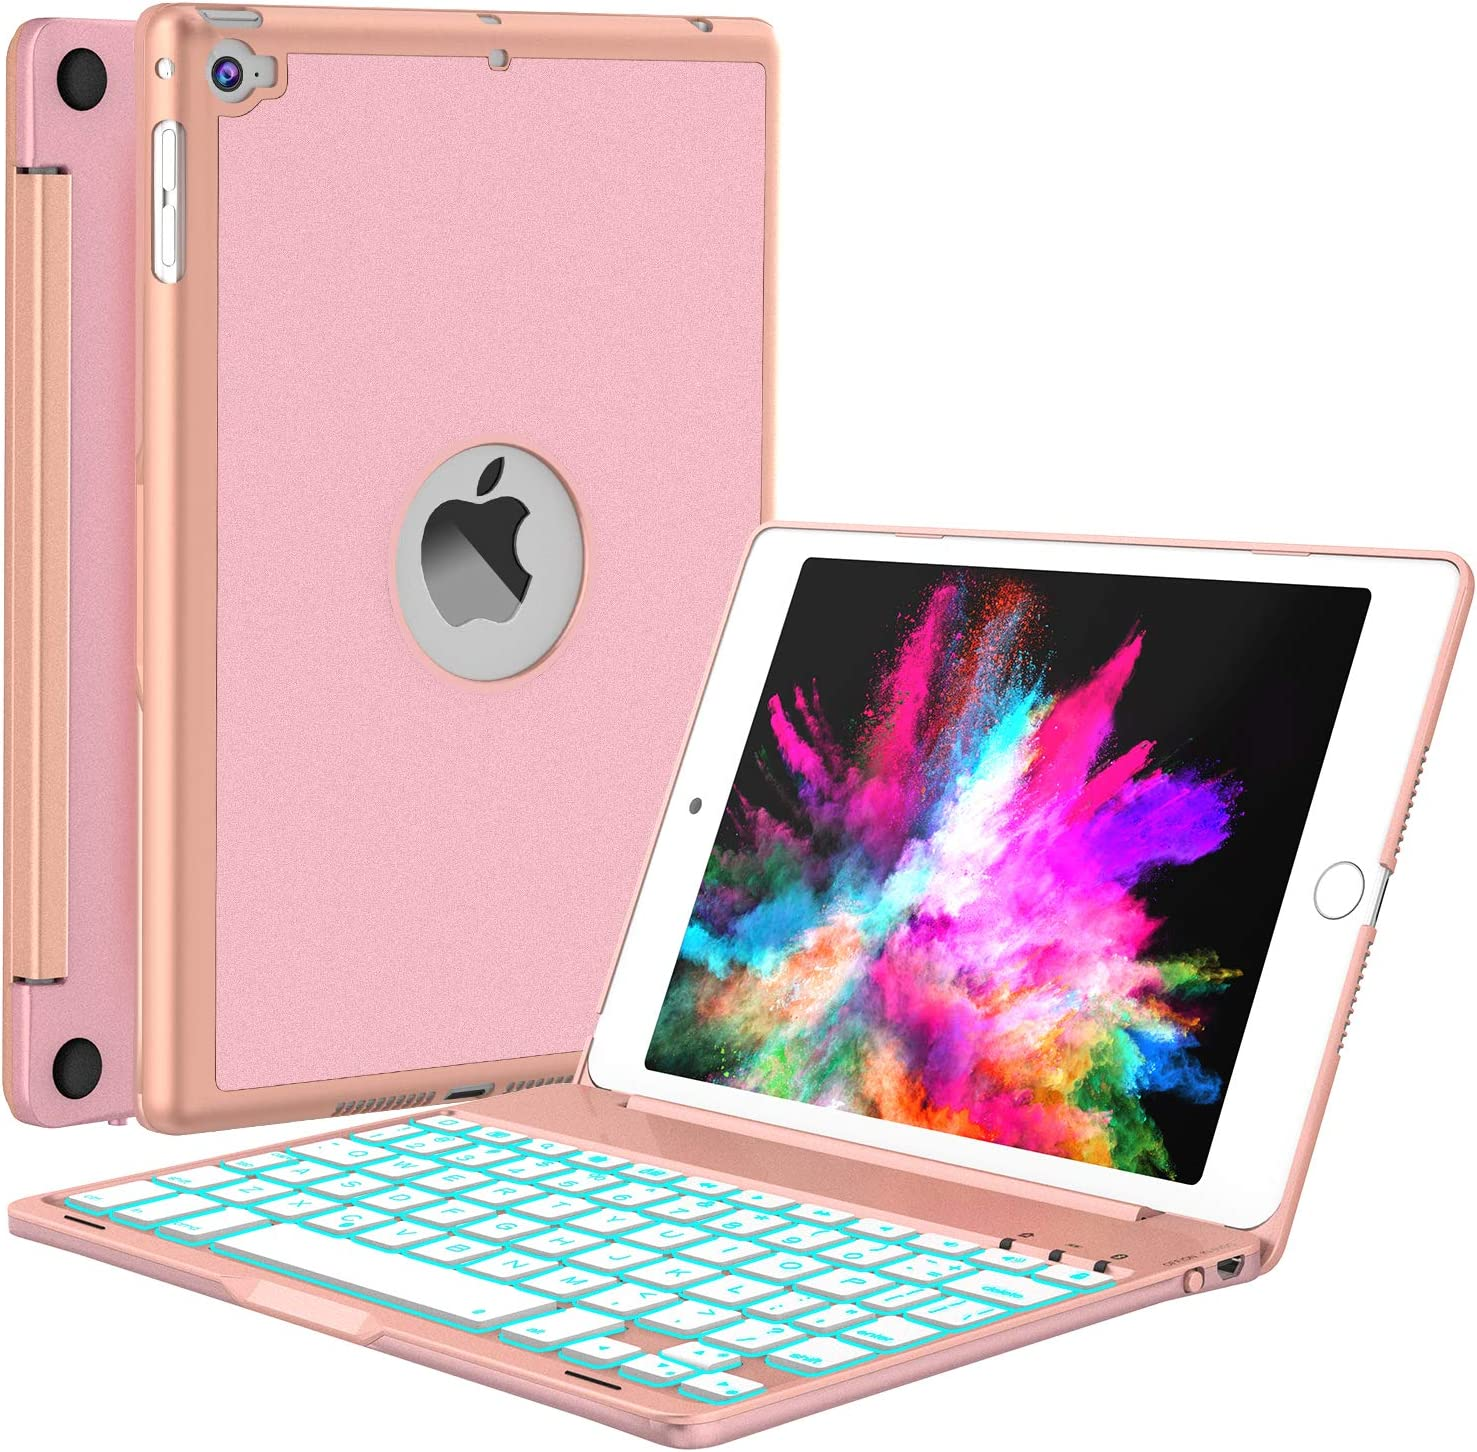 iPad Mini 5 / Mini 4 Keyboard - 135 Degree Flip 7 Color Backlit Aluminum Shell Smart Folio Keyboard Case with Auto Sleep/Wake for iPad Mini 5th Gen 2019 / iPad Mini 4 2015, Rose Gold